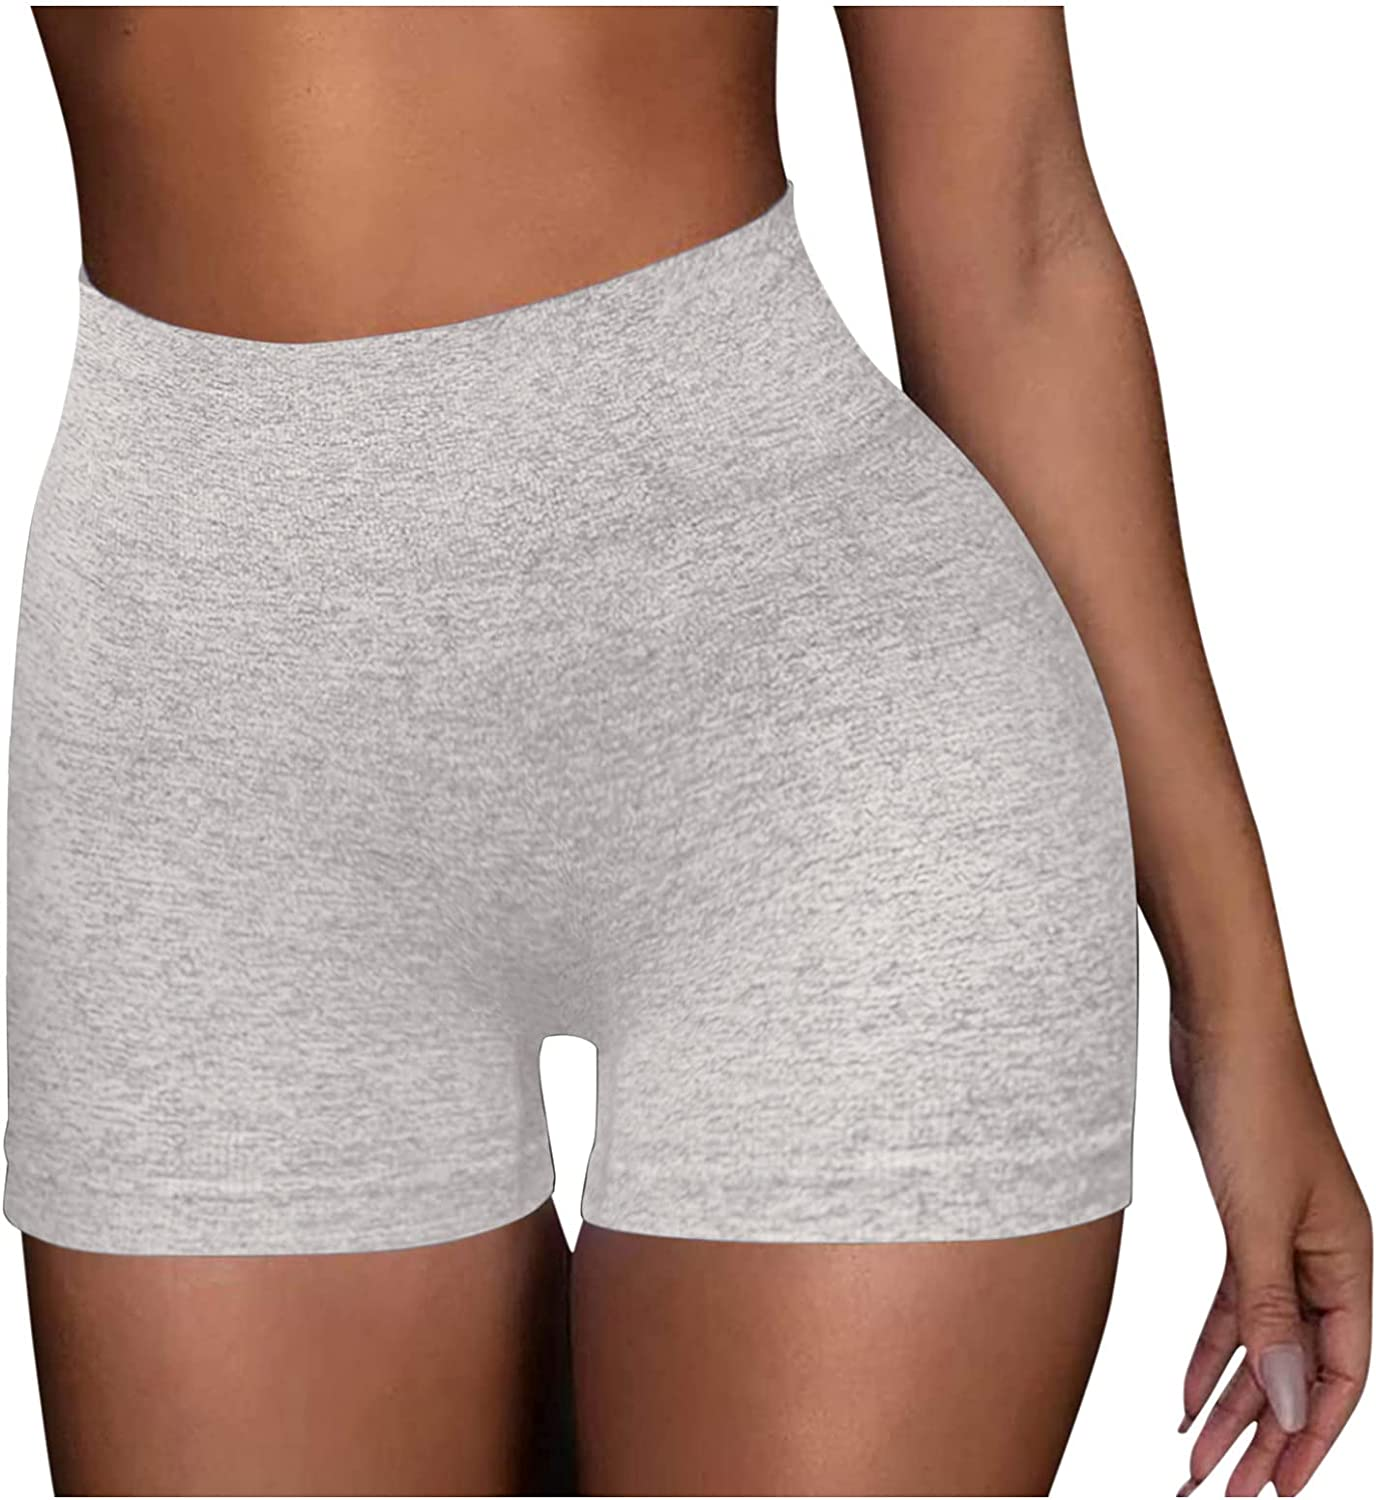 online shop Yoga Pants Spring new work one after another for Women High Waist Butt Lift Tummy Leggings Shorts